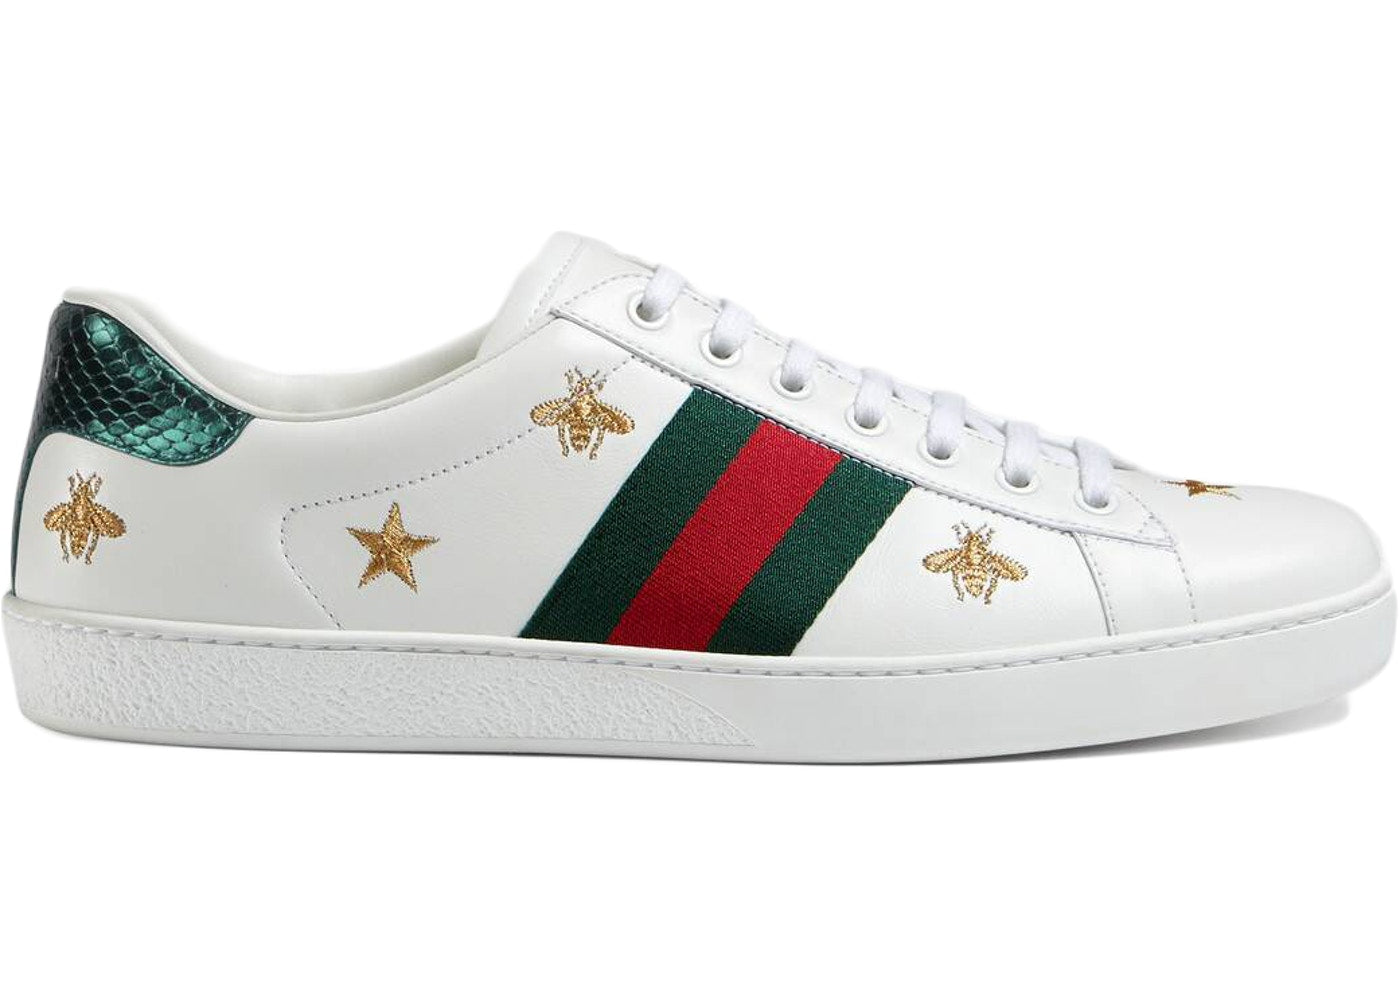 Gucci Ace Bees and Stars